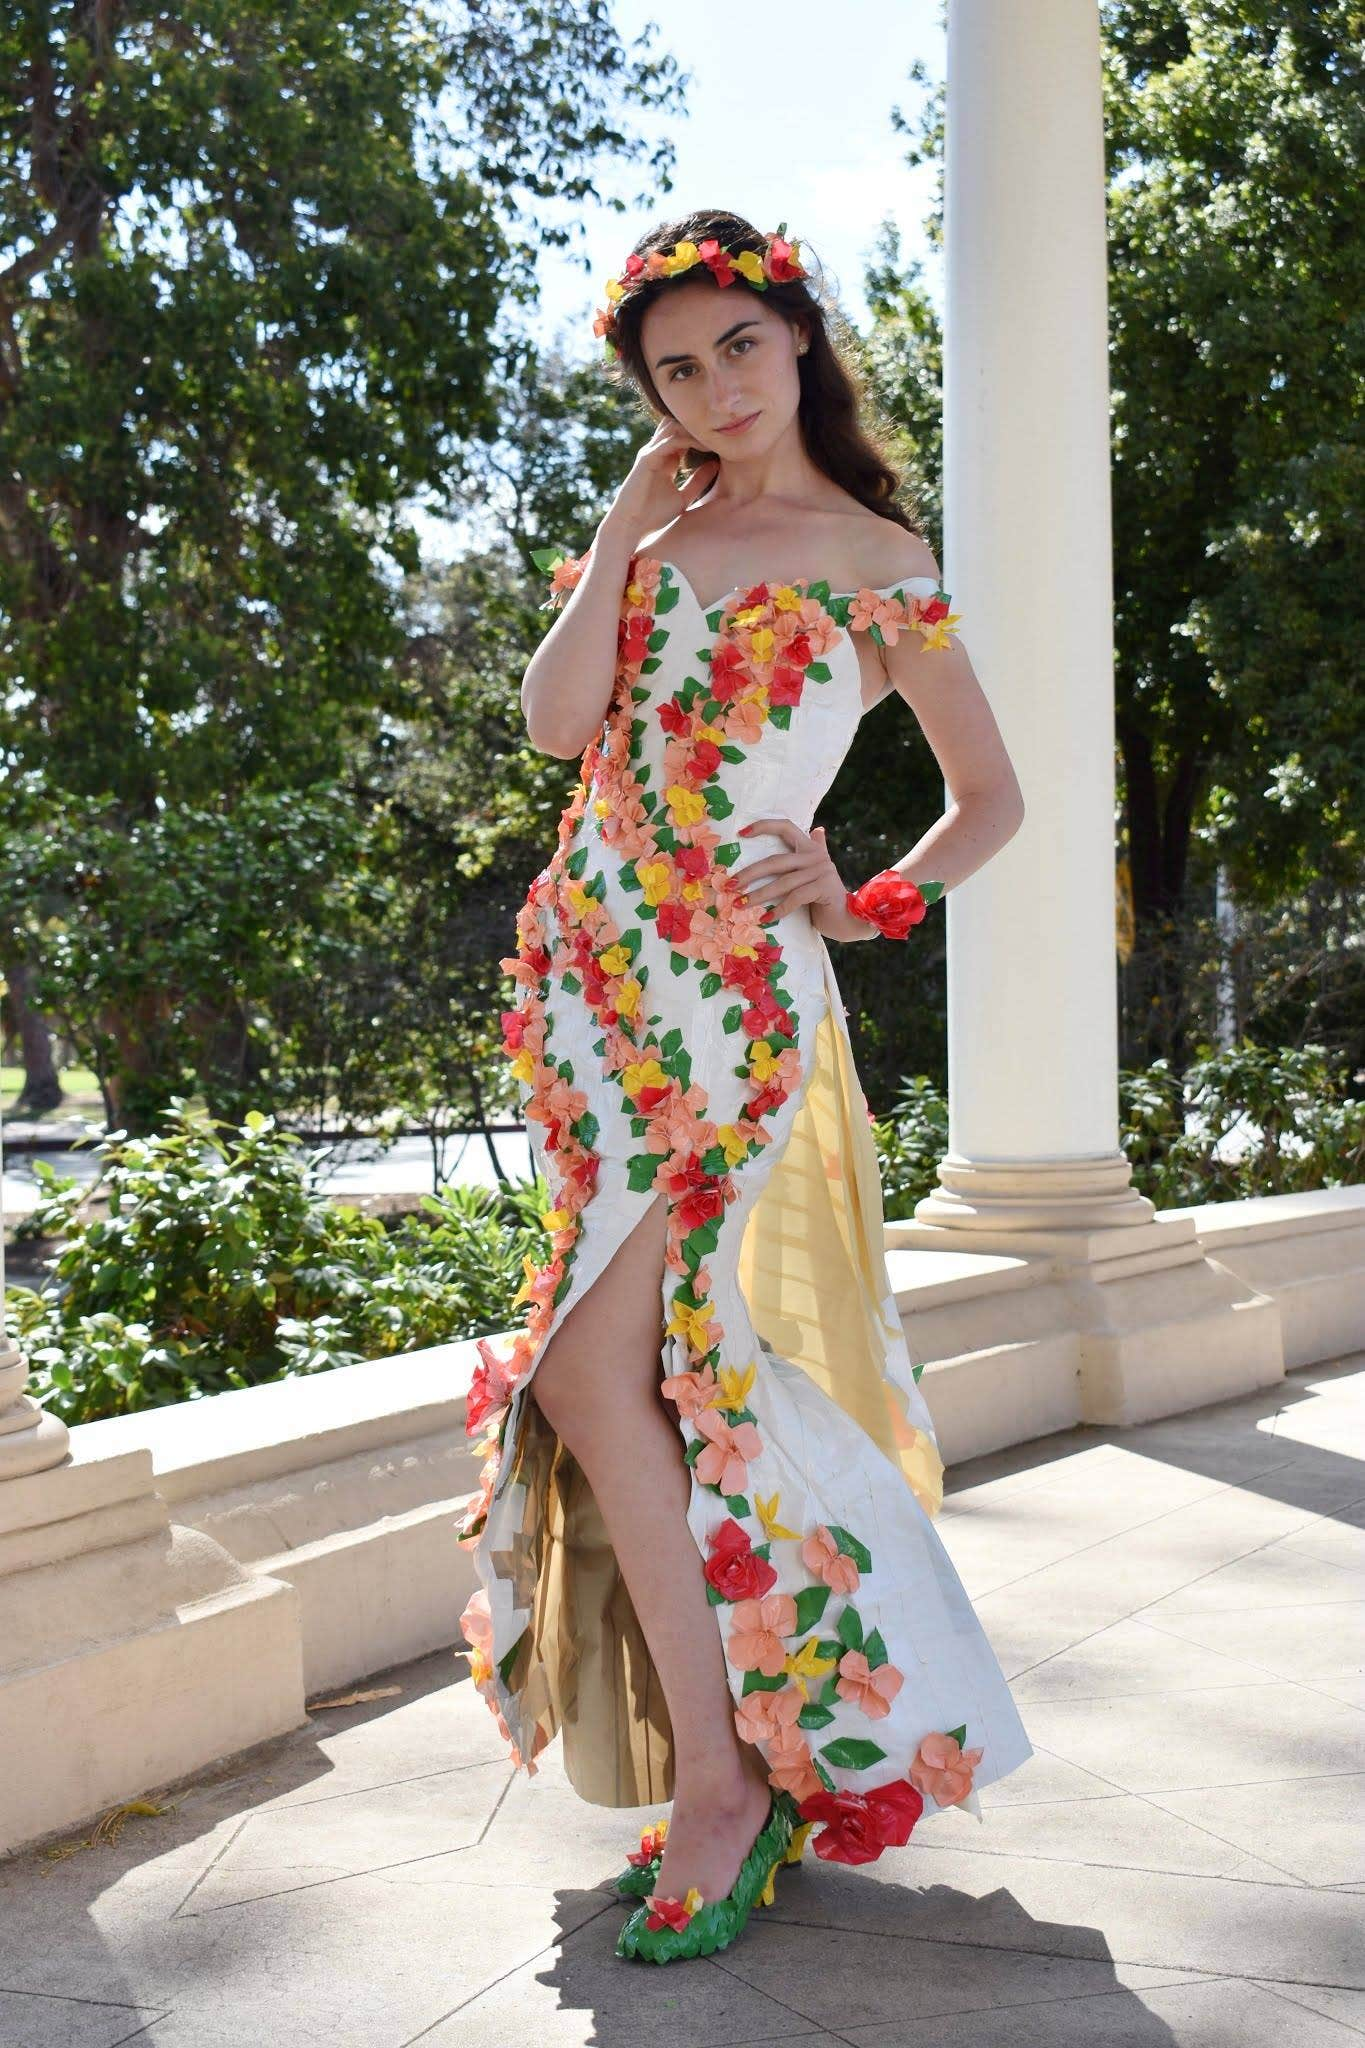 Girls Floral Duck Tape Prom Dress May Earn Her 10k Fox News